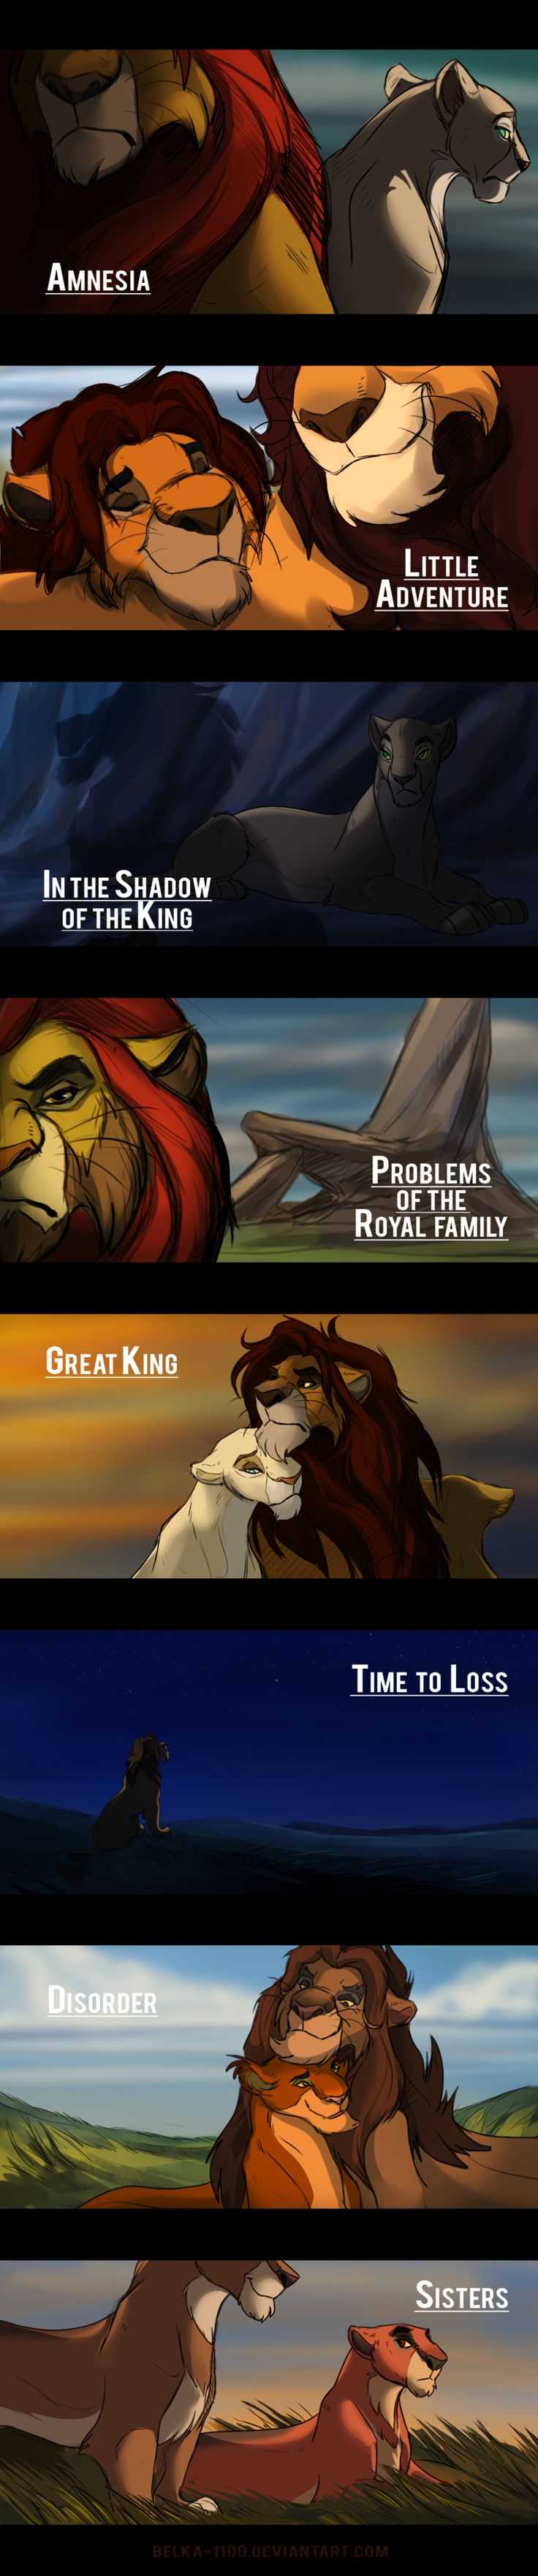 The lion king comics preview by belka 1100 on deviantart